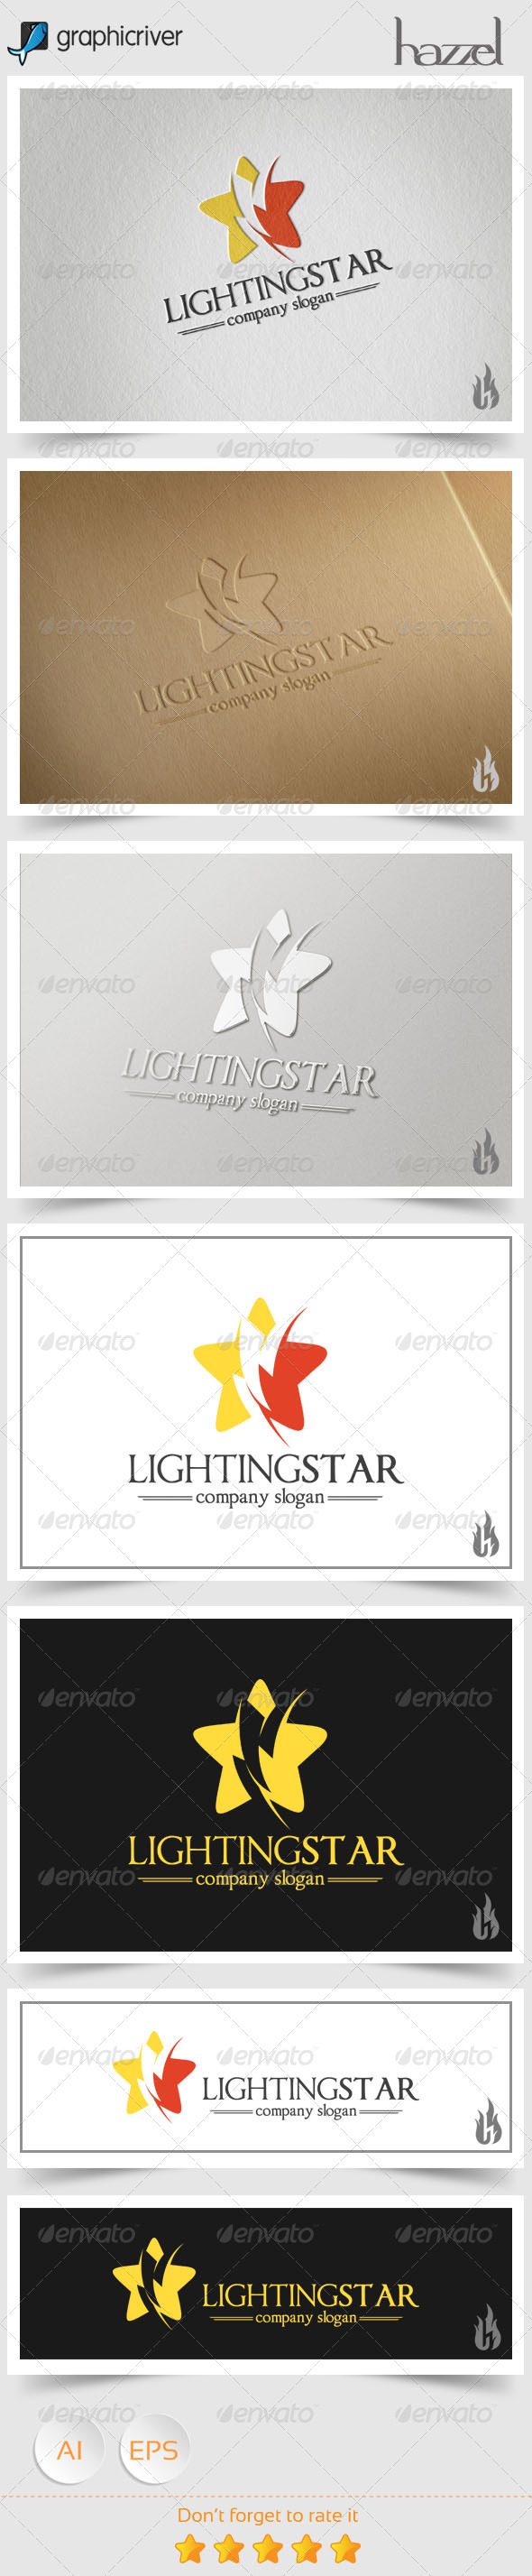 Lighting Star Logo